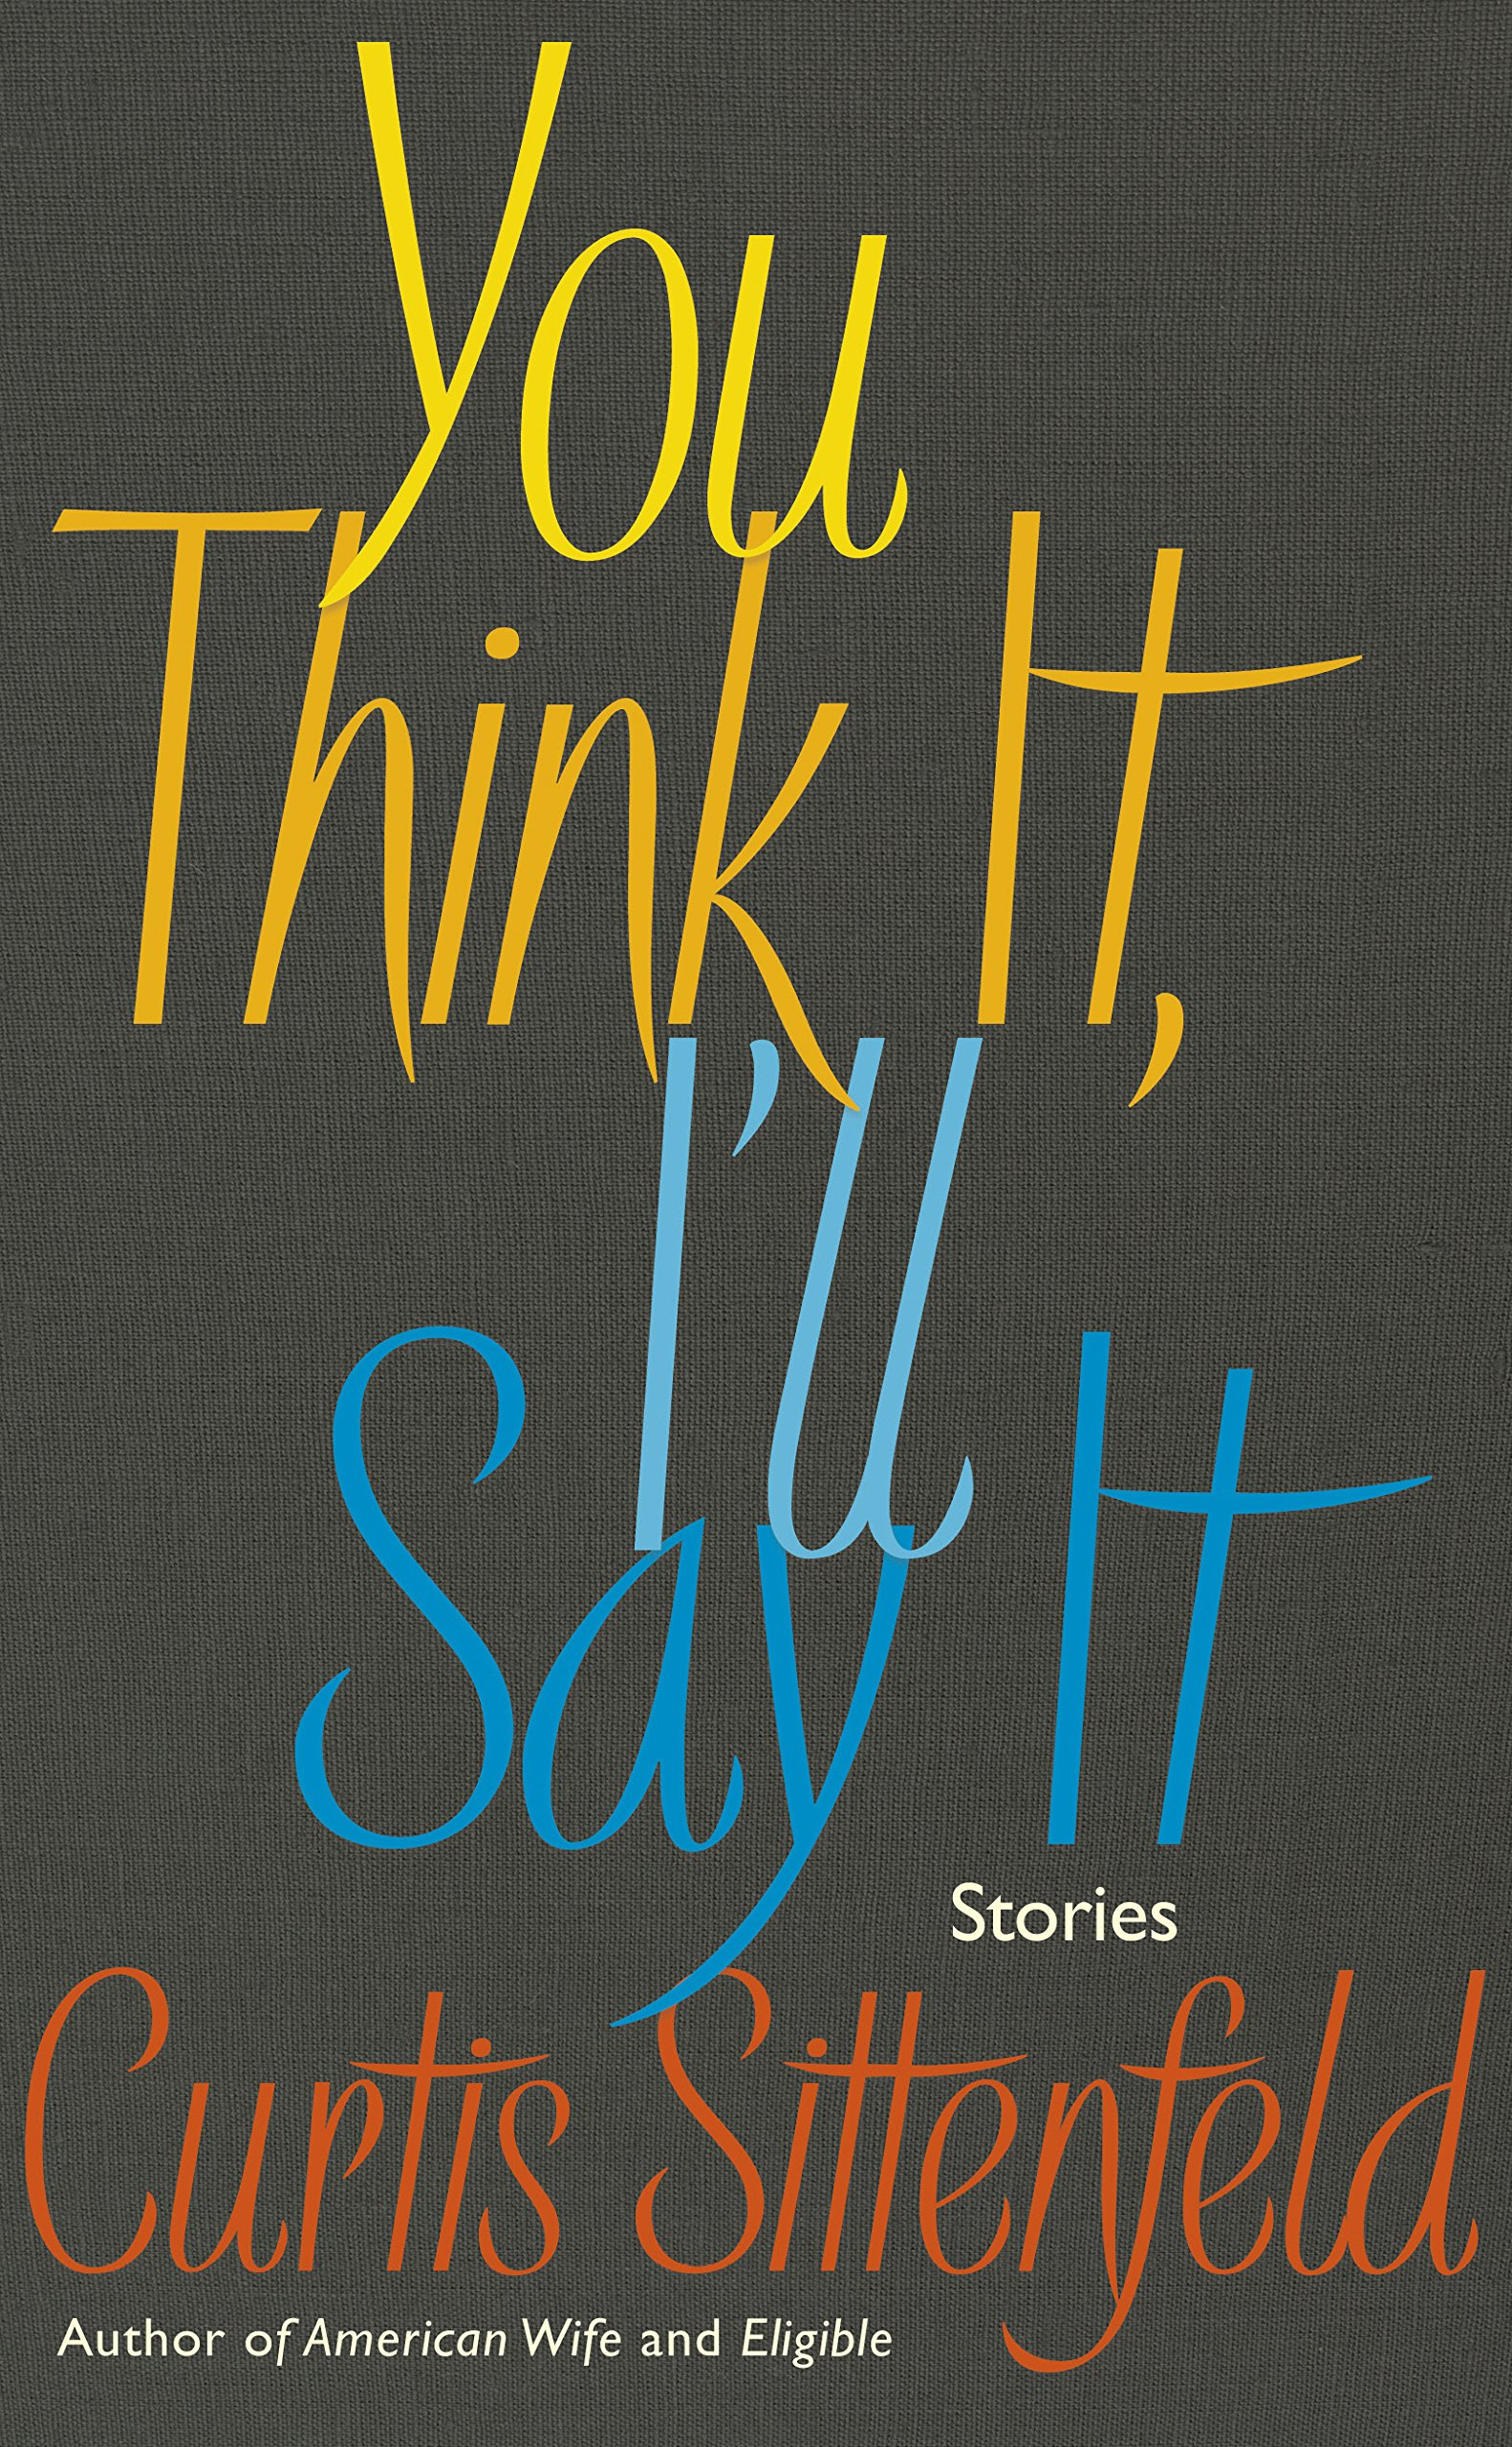 You Think It, I'll Say It: Ten scorching stories of self-deception by the Sunday Times bestselling author: Amazon.co.uk: Sittenfeld, Curtis: 9780857525383: Books